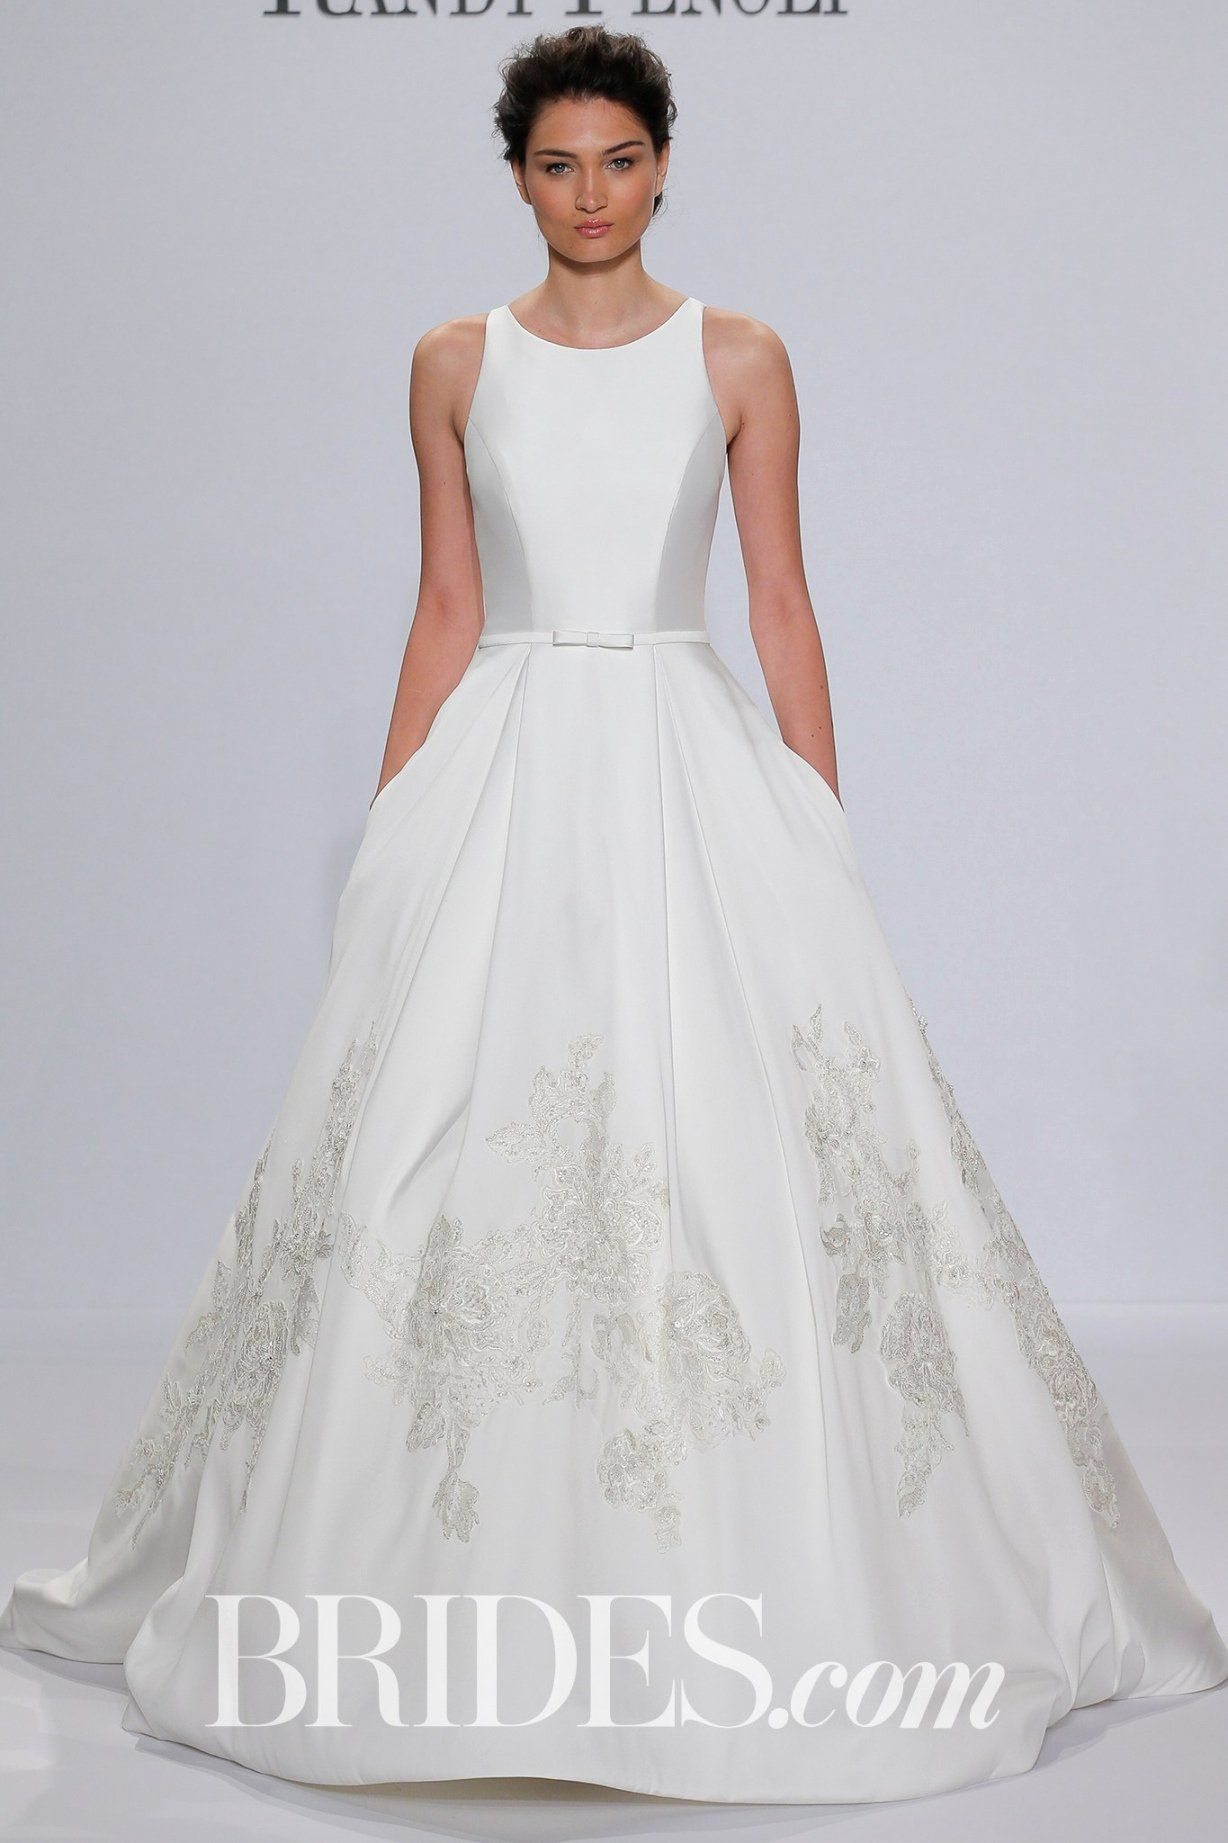 Wedding Dress Alterations Nyc Lovely Where To Shop For Wedding Dresses Nyc Raveits In 2020 Wedding Dresses Kleinfeld Wedding Dress Long Sleeve Designer Wedding Dresses